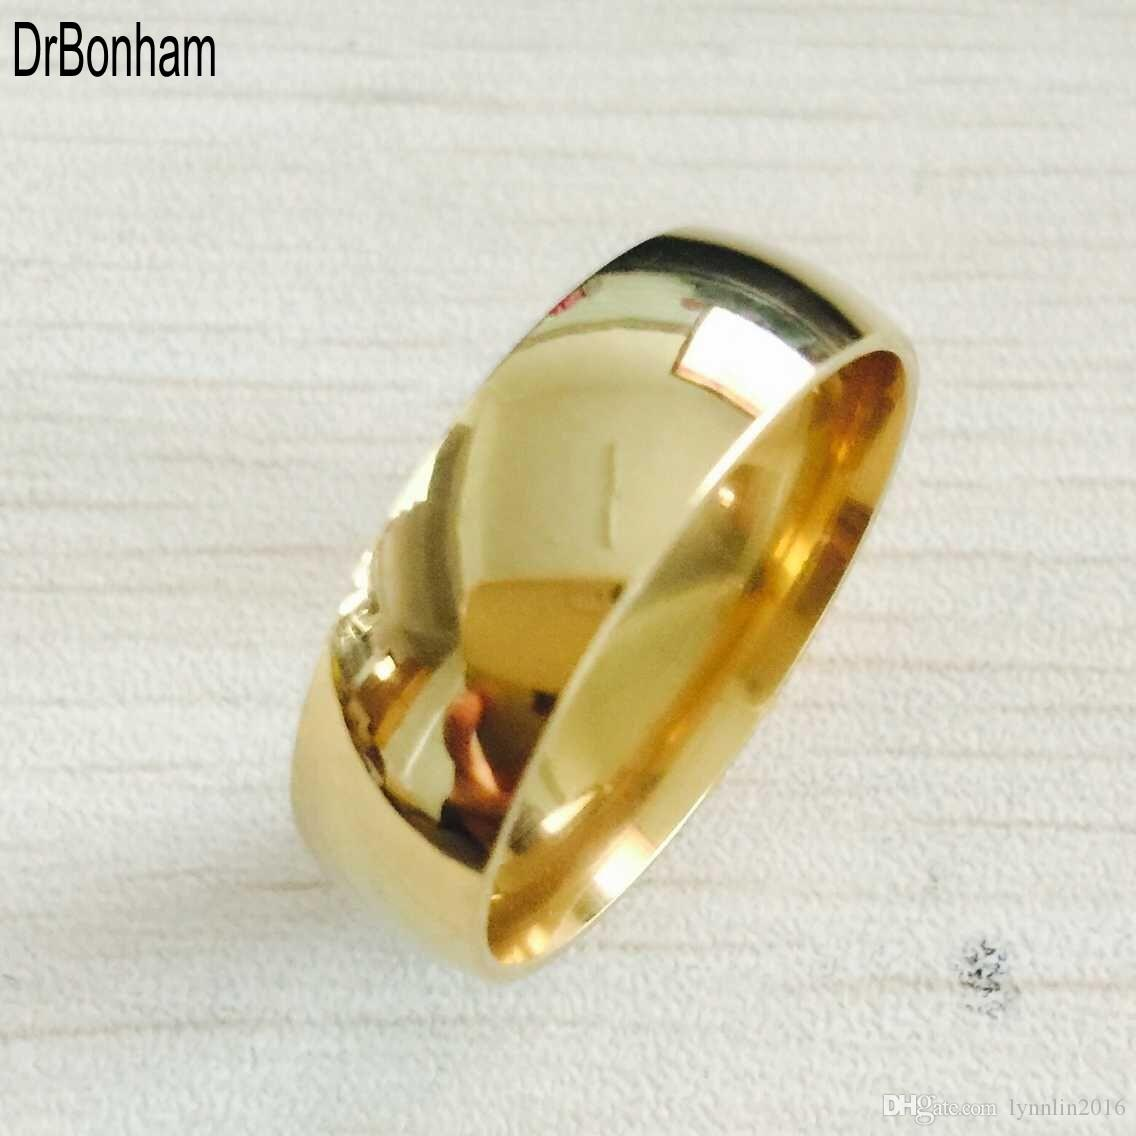 ring lrg in fit wedding ca gold main detailmain yellow blue bands phab band nile comfort